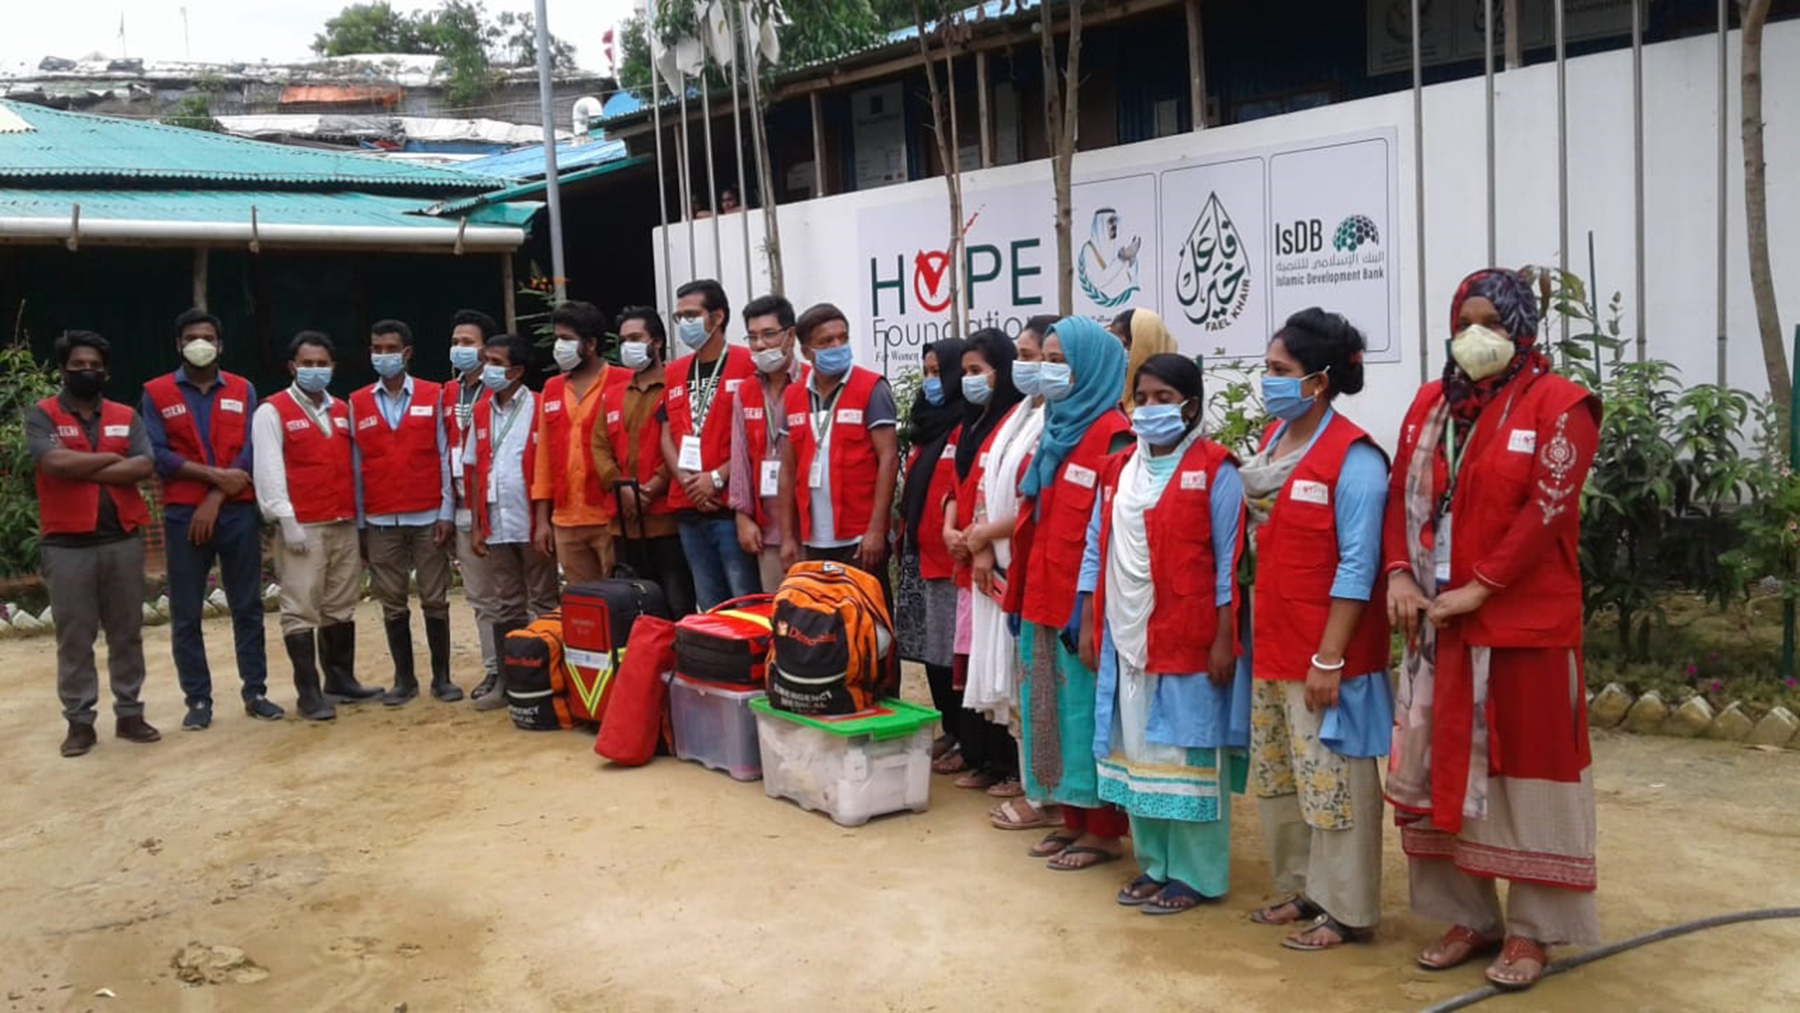 Health workers prepare to respond to Cyclone Amphan. (Photo courtesy of Dr. Iftikher Mahmood)